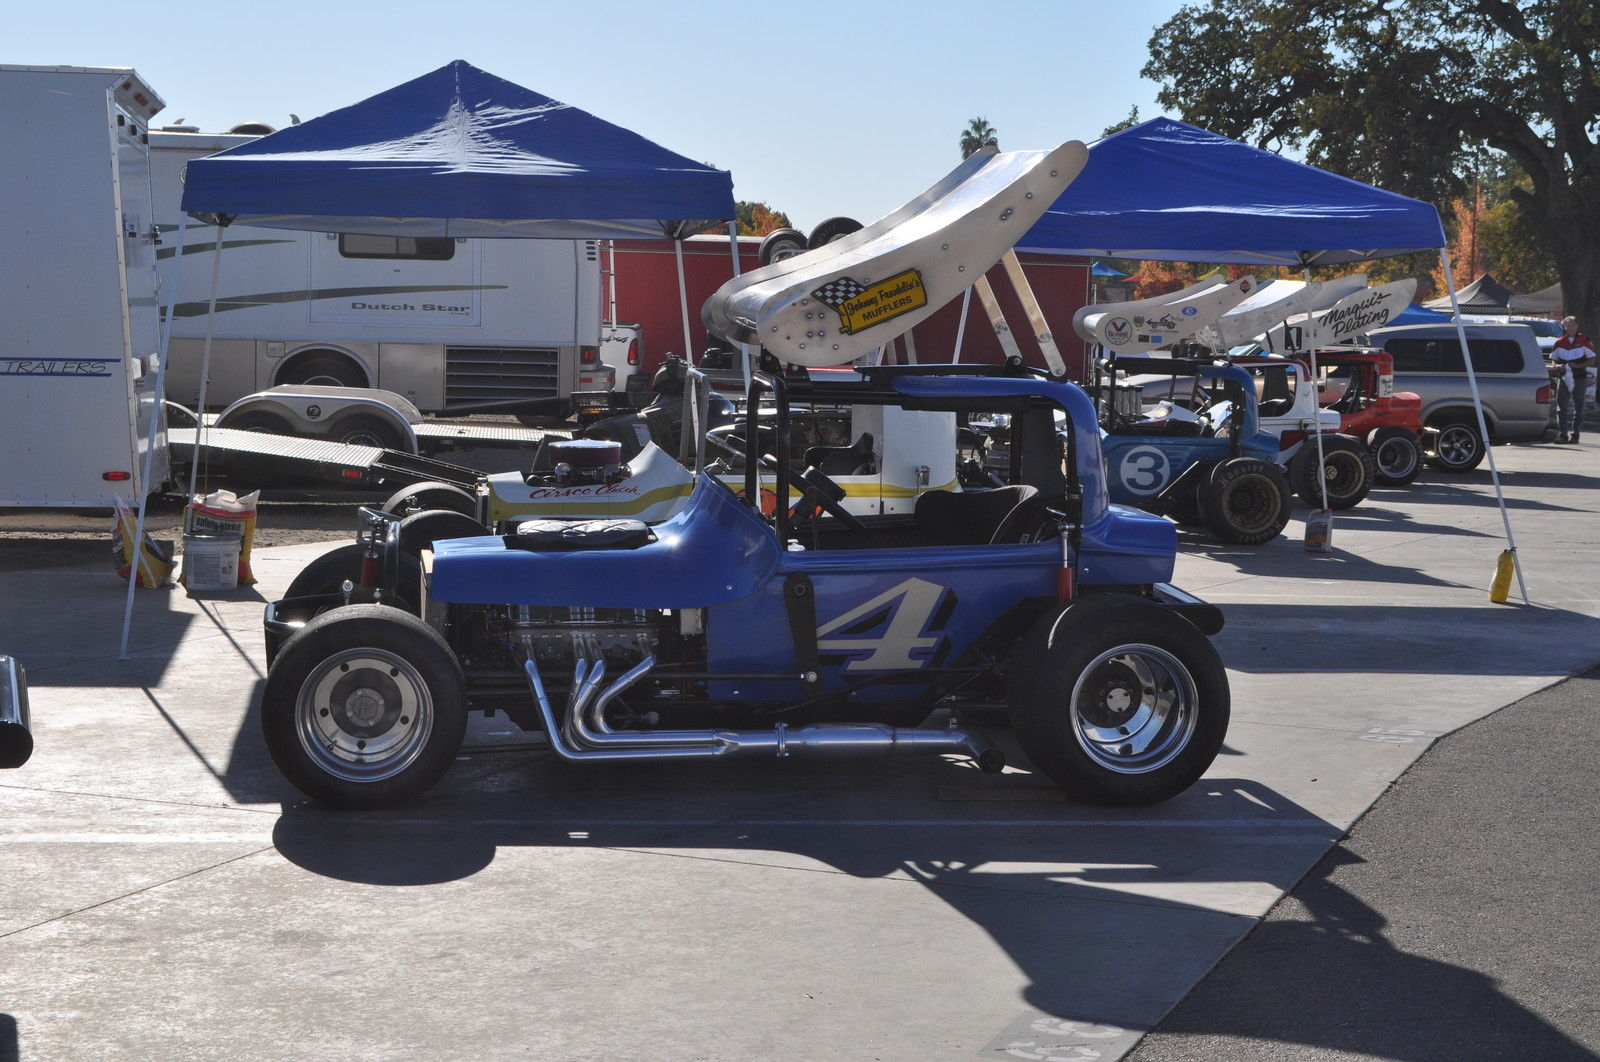 60s Vintage Super Modified Racing for sale